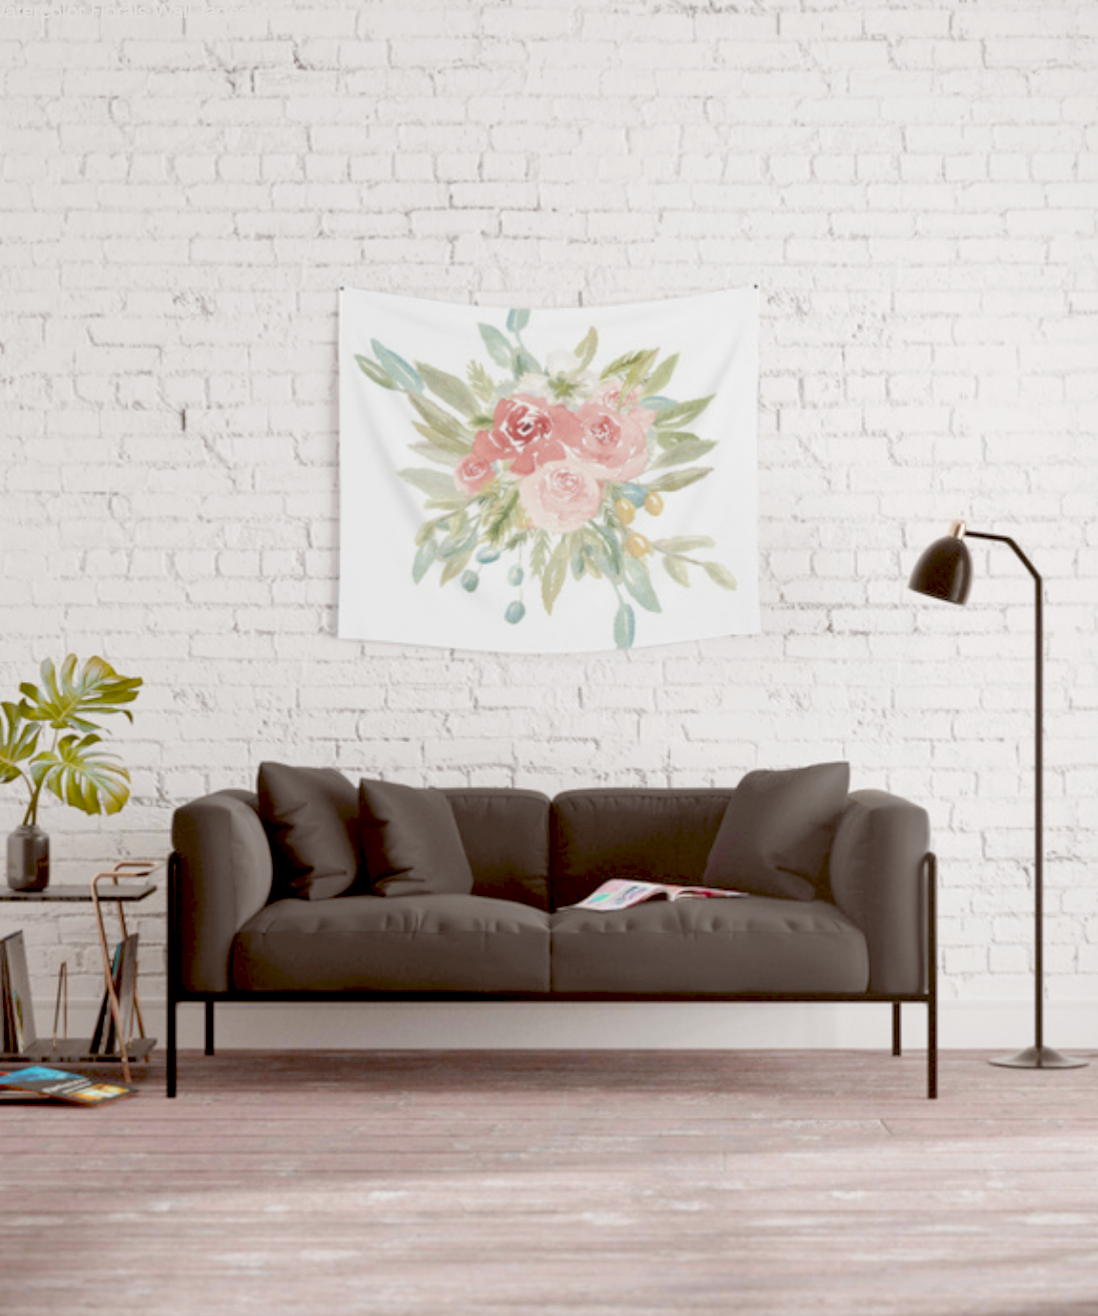 Loose Watercolor Boho Vintage Florals | Wall Tapestry | Lauren Antoniaa Design on Society 6